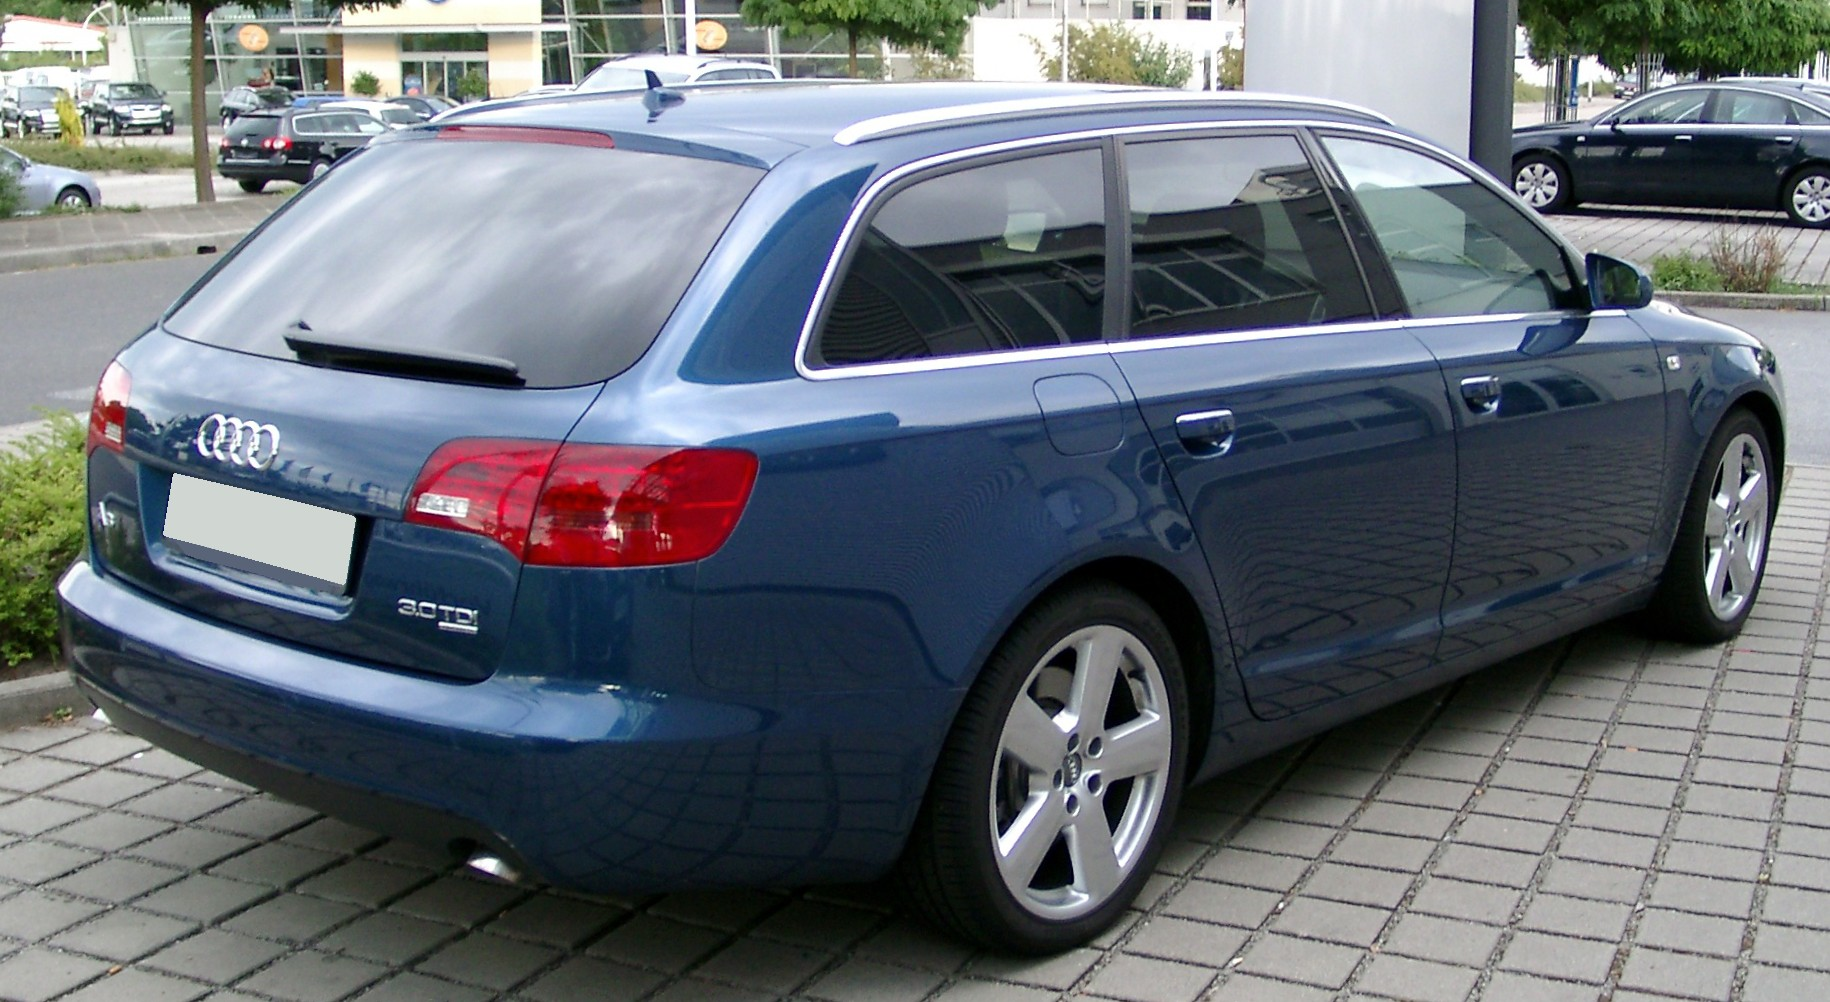 File:Audi A6 C6 Avant rear 20080621.jpg - Wikimedia Commons